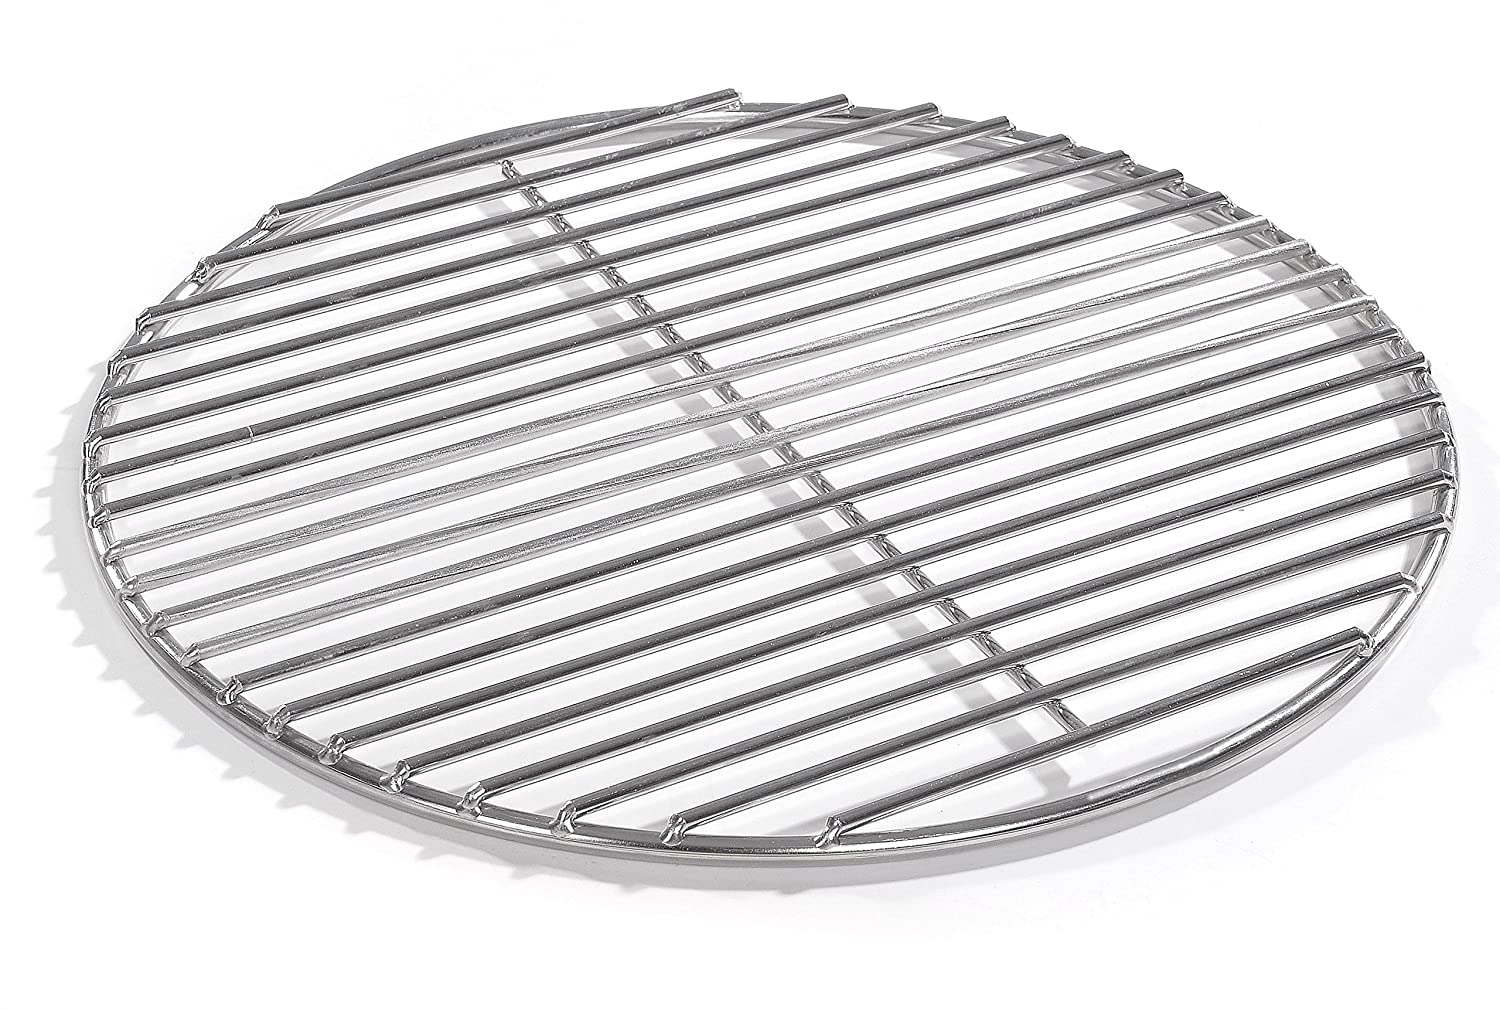 40 cm Round Stainless Steel Kettle Grill, 4 mm V2 A Stainless Steel Cooking Grate for Fire Bowl BBQ Trays Round Grill Grilltante